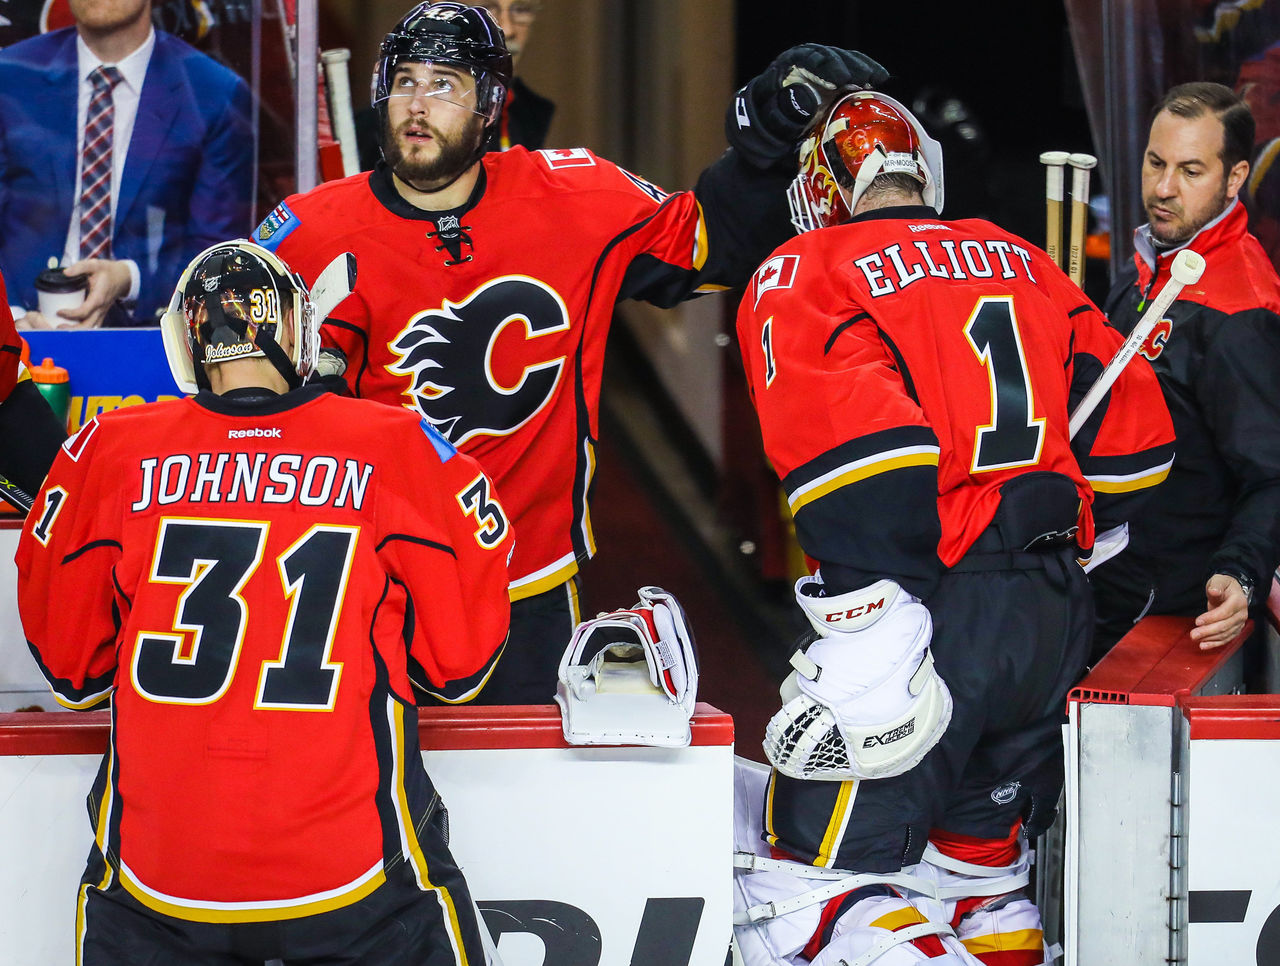 Cropped_2017-04-20t031108z_1807582145_nocid_rtrmadp_3_nhl-stanley-cup-playoffs-anaheim-ducks-at-calgary-flames